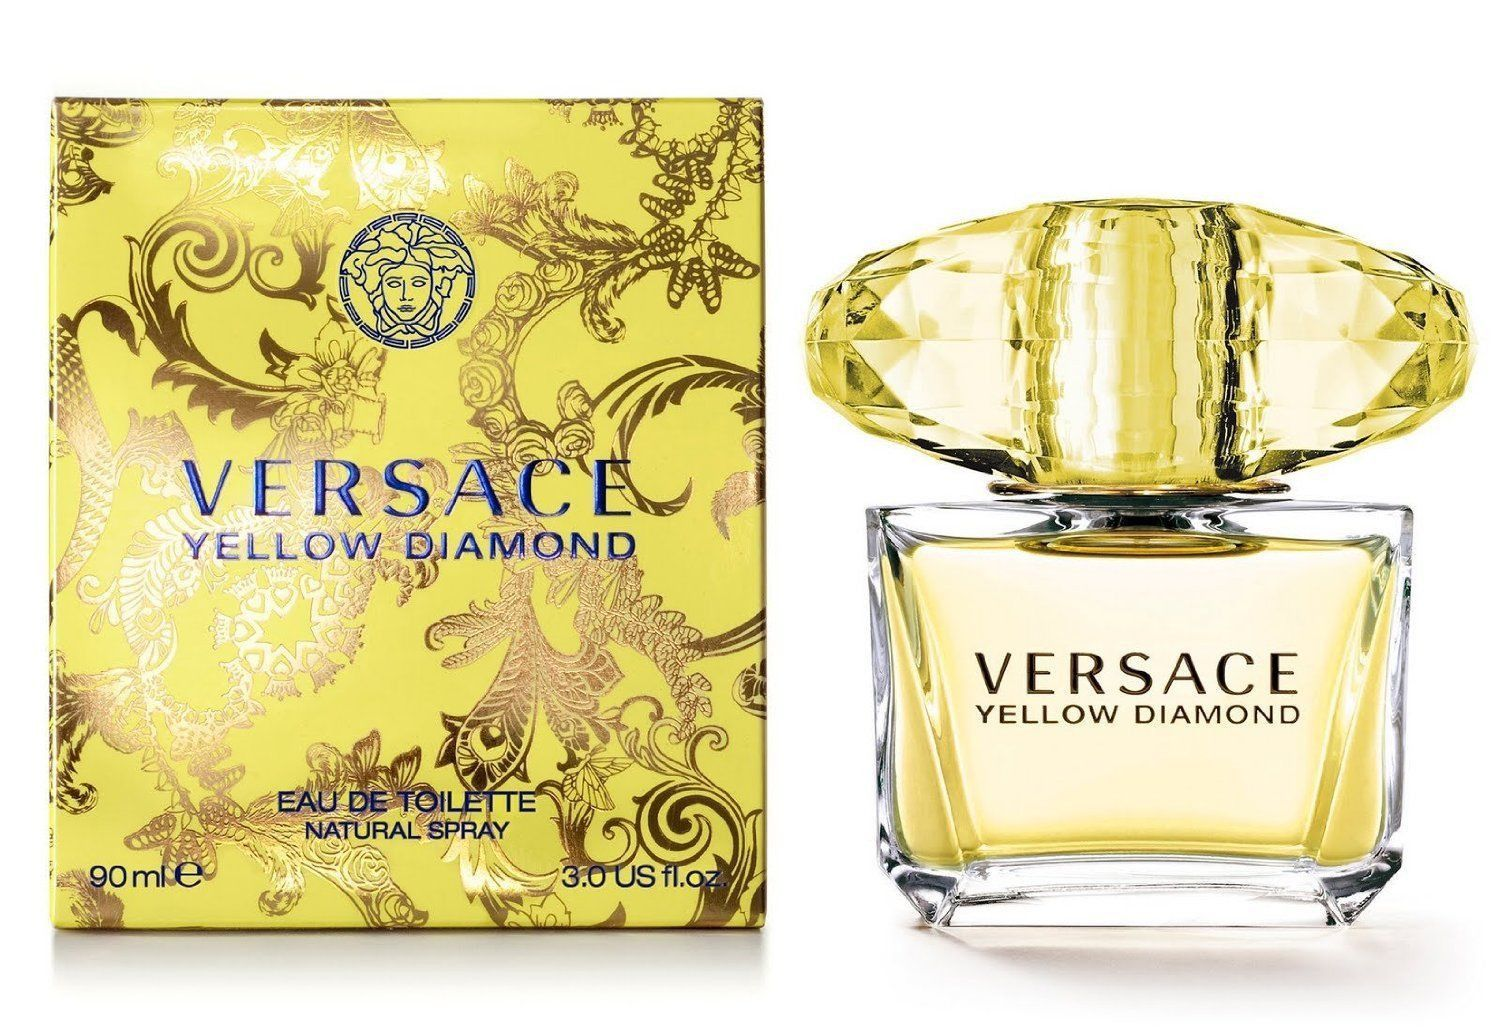 Yellow Diamond 3.0 oz EDT for women Versace perfume